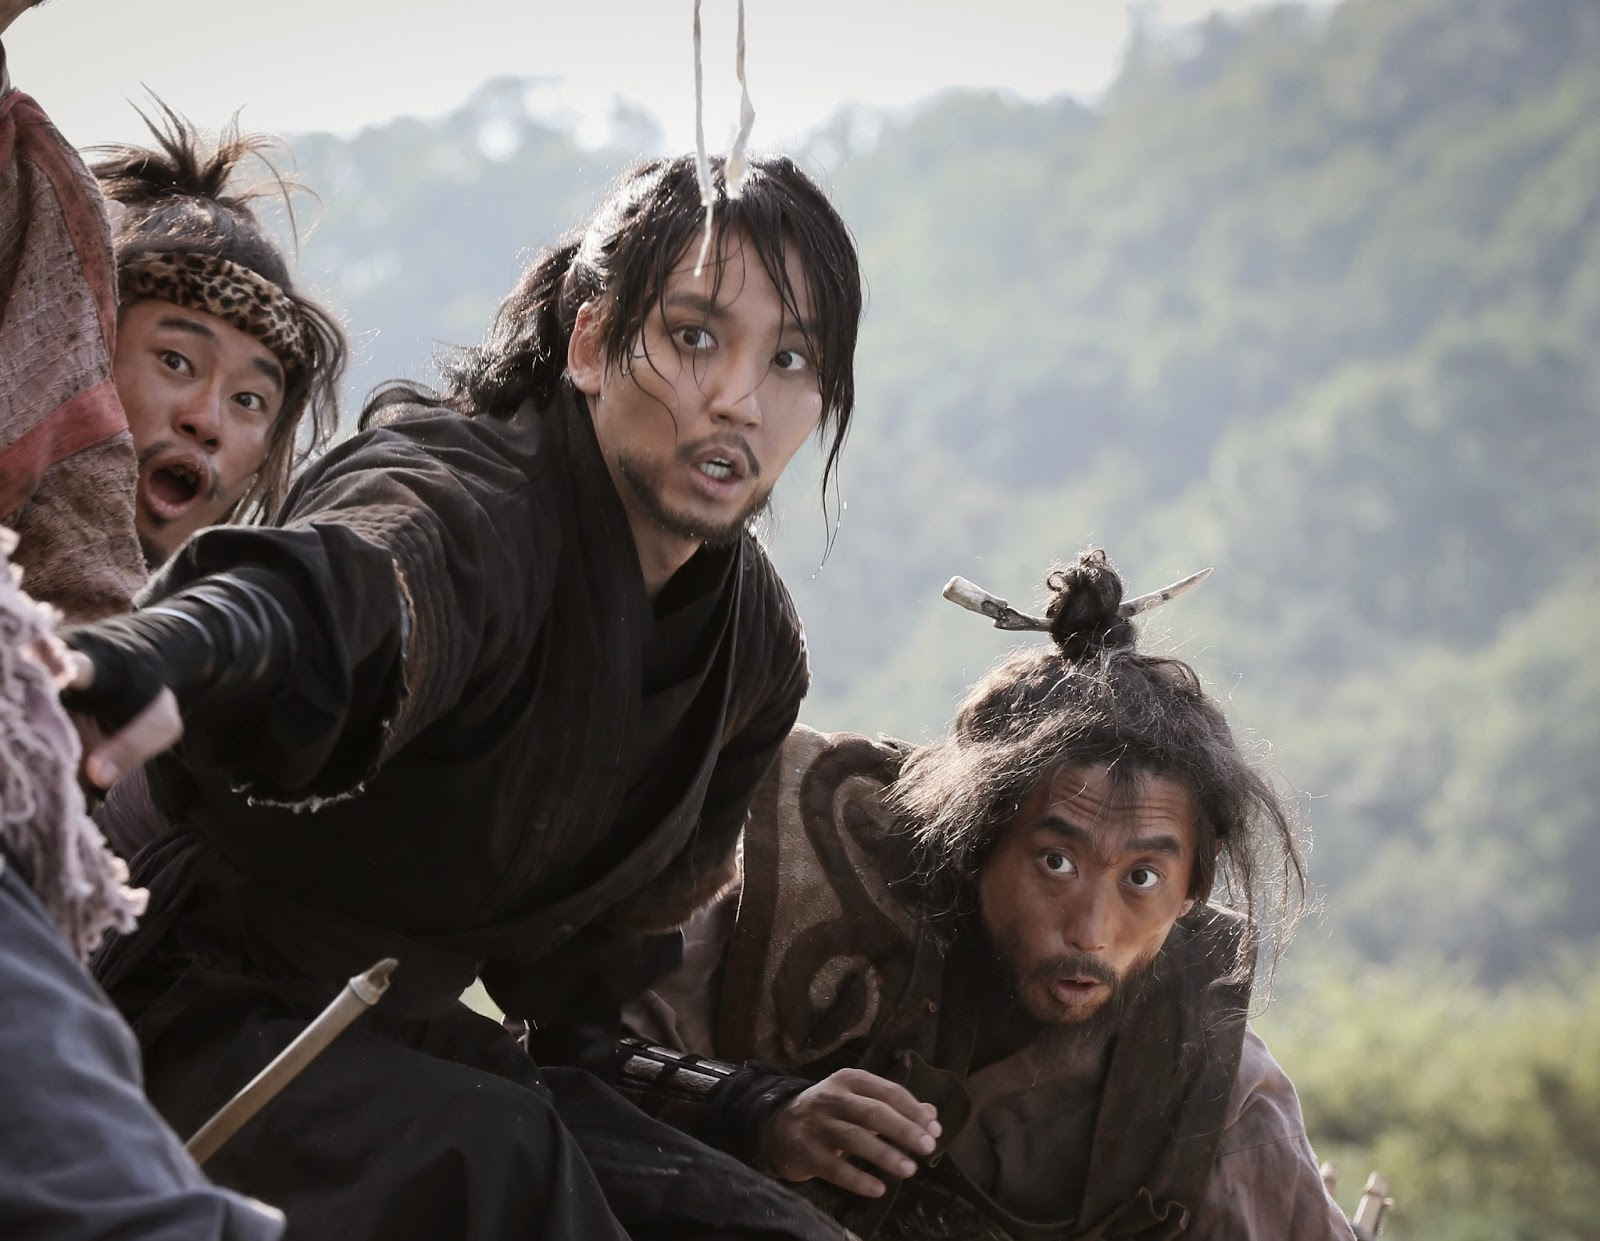 Adegan Lucu dari Film The Pirates Korea 2014